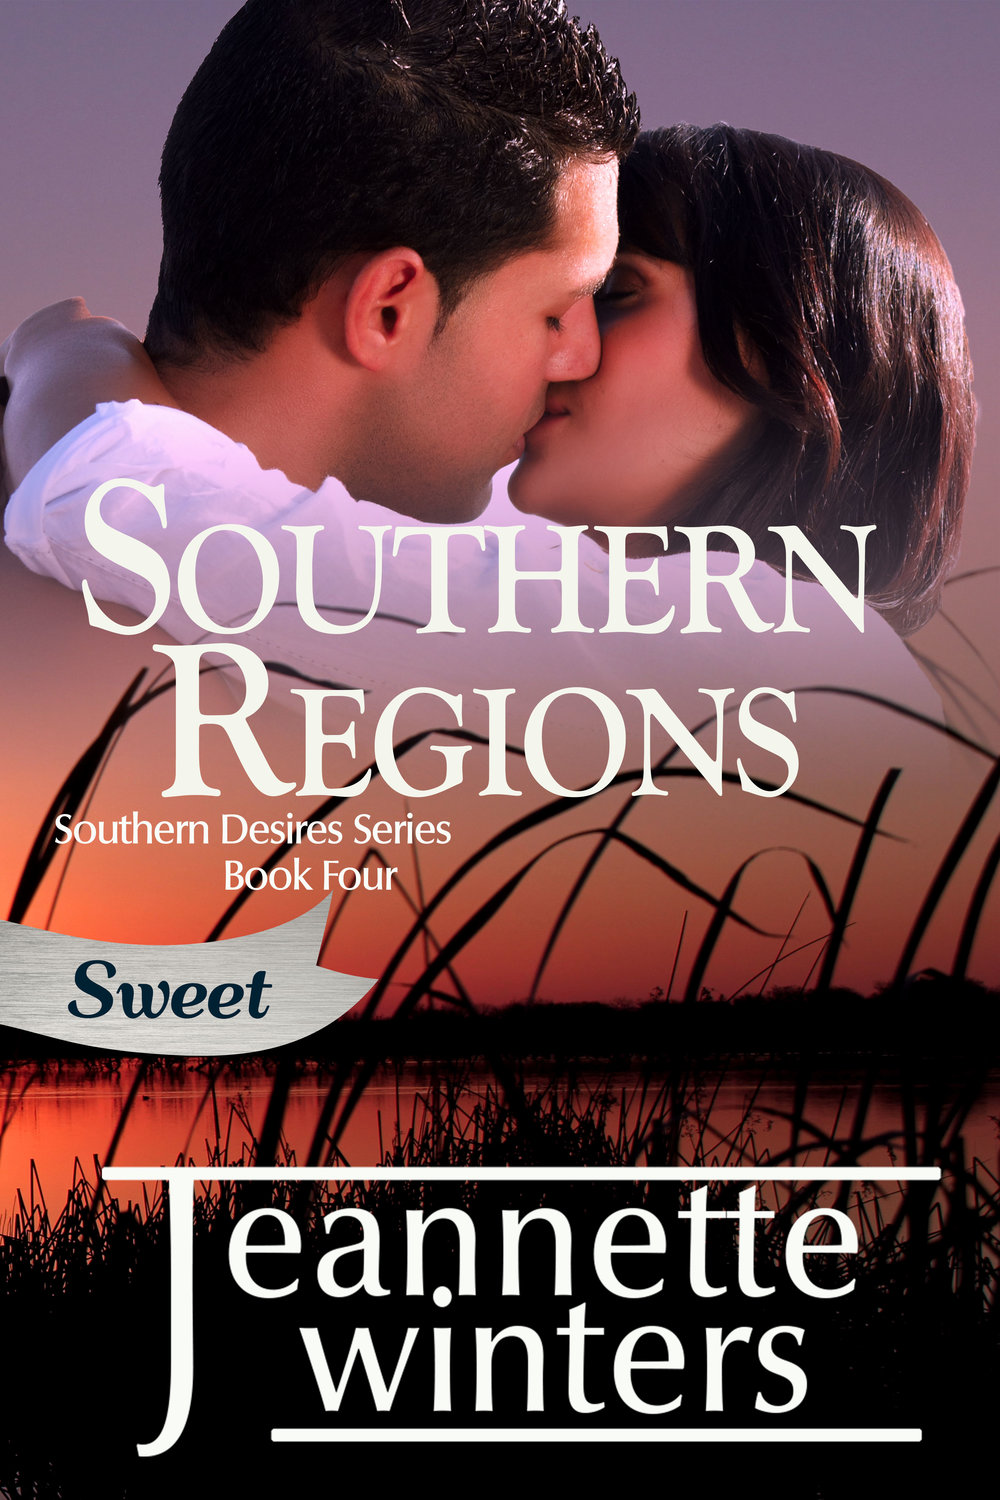 Enjoy this clean and wholesome version of Southern Regions. Same story without the spice. The Sweet version still contains adult situations and relationships. If you prefer the hotter version be sure to download the original.  Kevin Collins loves the lifestyle of a Marine fighter pilot, fast paced and always on the move. Never one for planting roots, he was the first in line for any mission.  Biochemist Marina Brimlow has been hiding from everyone but the one person she can't escape: herself. She's the only one who knows the truth, and the past needs to be dealt with if she ever wants a future. Doing so means risking it all.  When Kevin's grounded and told to detain Marina in the interest of national security, the terms of engagement aren't so clear. He has to find the answers they need at any cost. No matter how guilty Marina appears, Kevin finds a battle raging within him, and he'll do anything to protect her.  When Marina's life is on the line, she turns to Kevin, the only person she trusts. Once he knows the ugly truth, will the connection they share be broken because of what she'd done or will Kevin find he has even more to fight for?